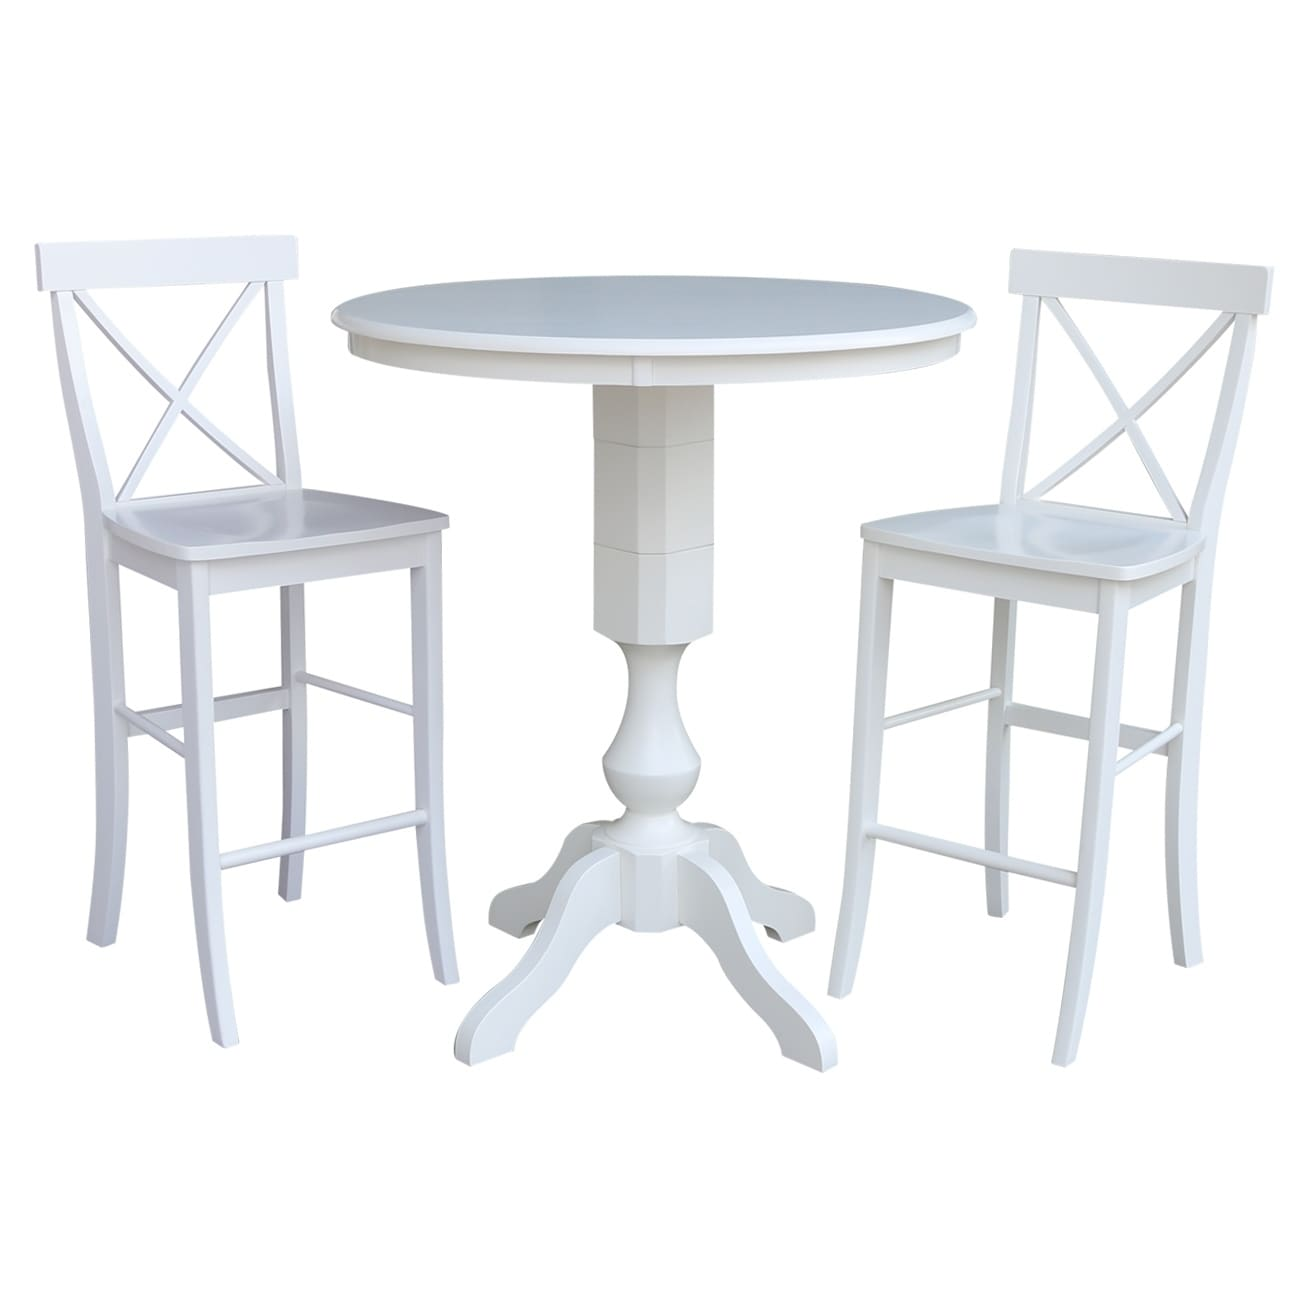 Tremendous 36 Round Pedestal Bar Height Table With 2 X Back Bar Height Stools Pabps2019 Chair Design Images Pabps2019Com